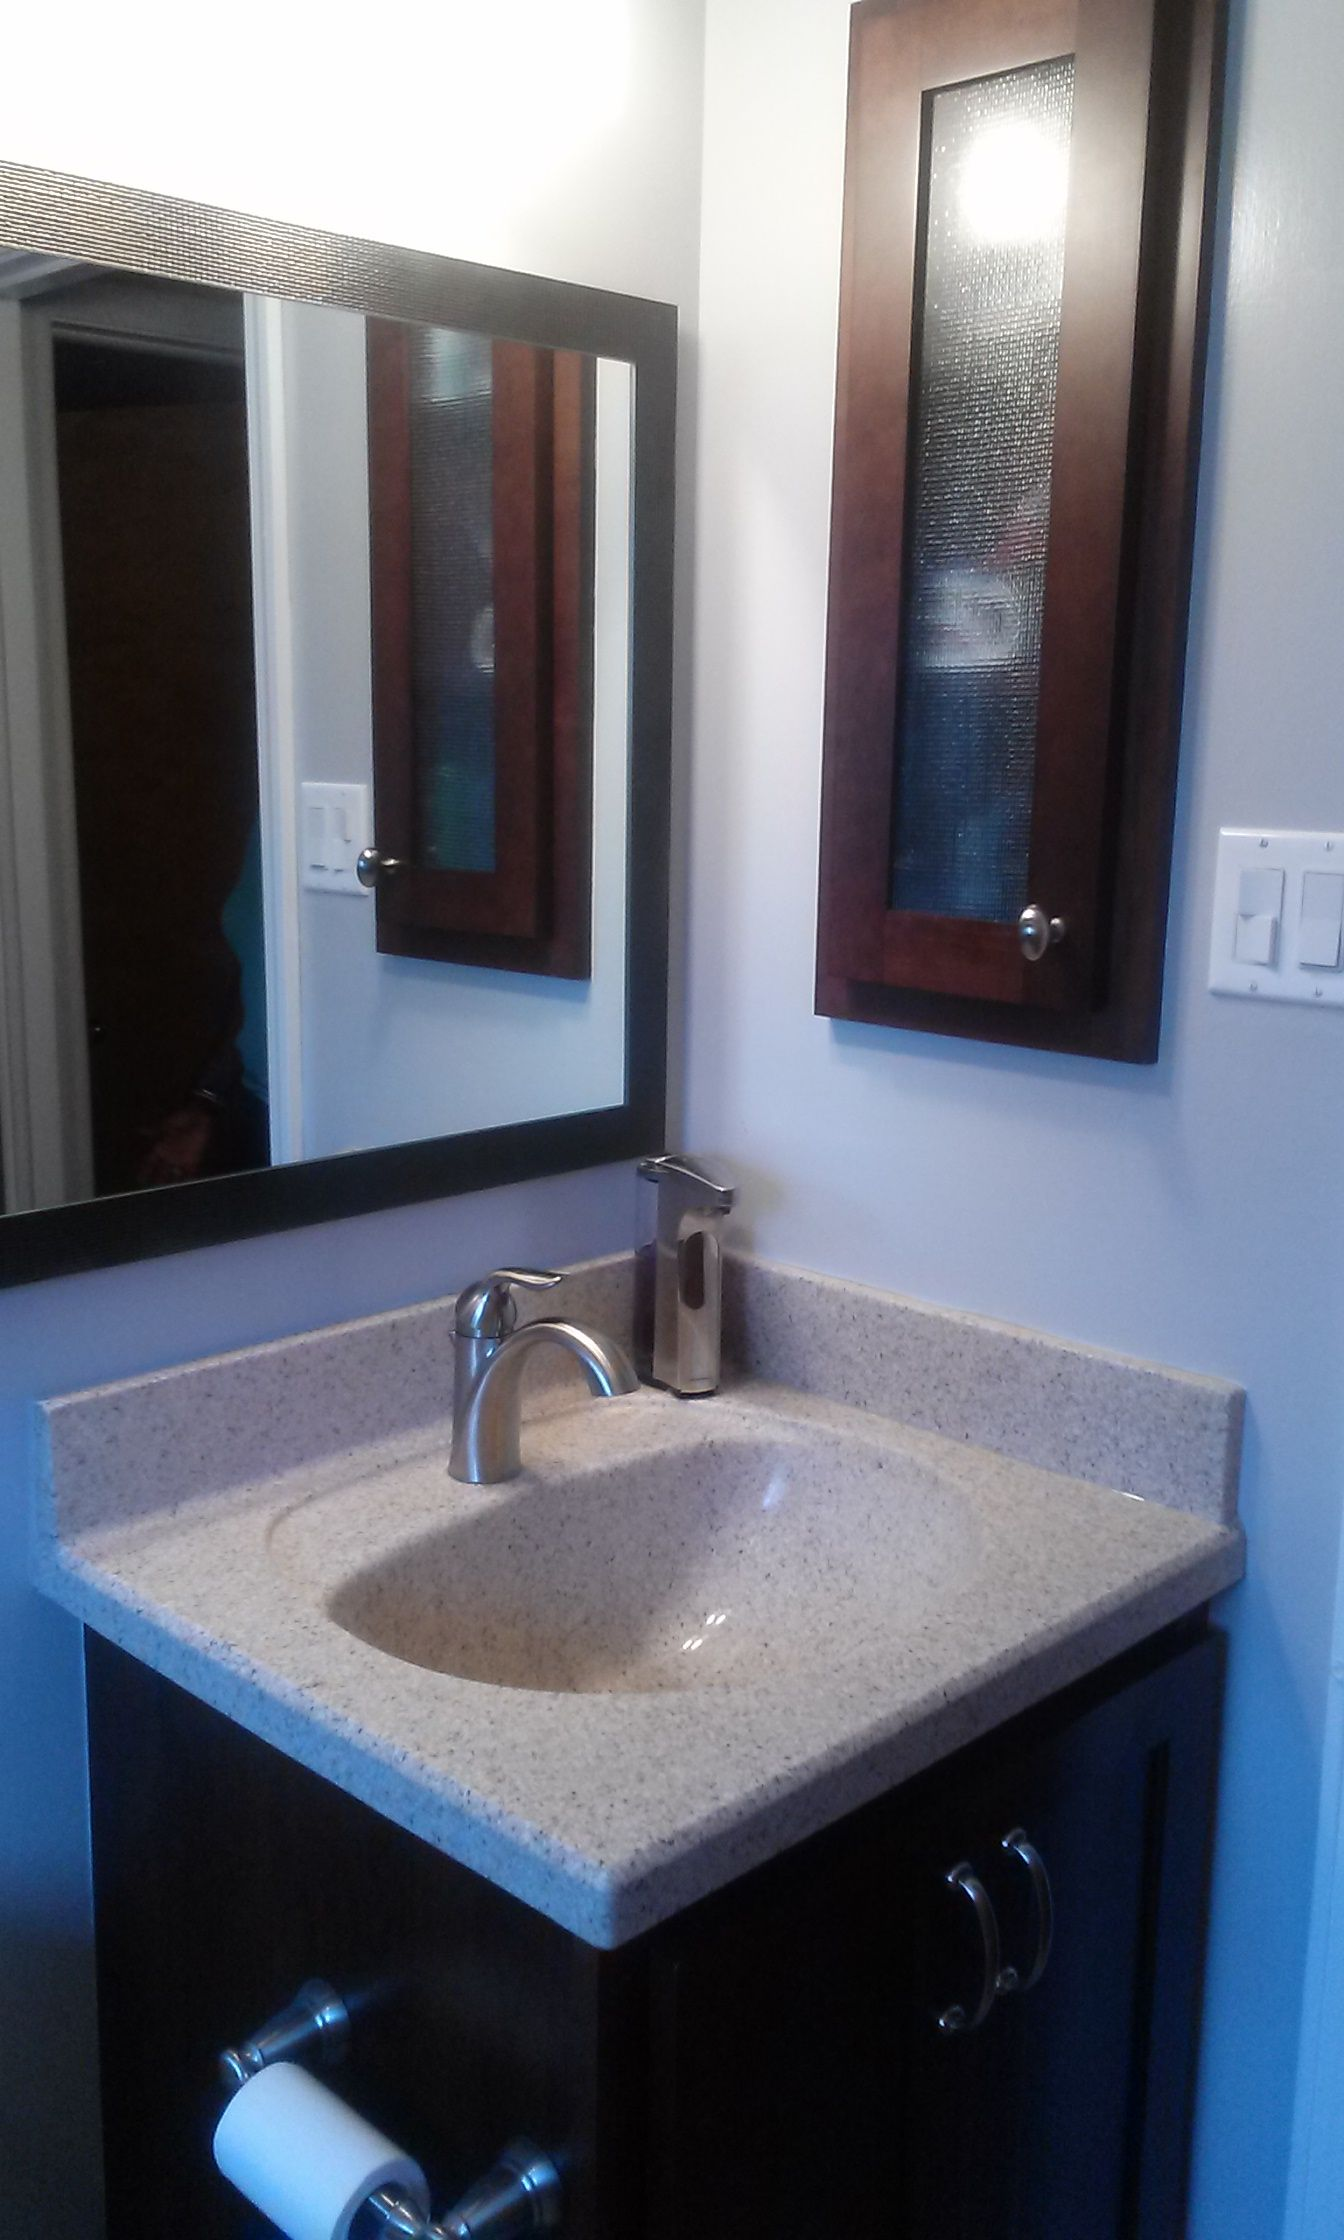 Dark Cabinetry with Marbelite countertop and splashes, tiled tub ...